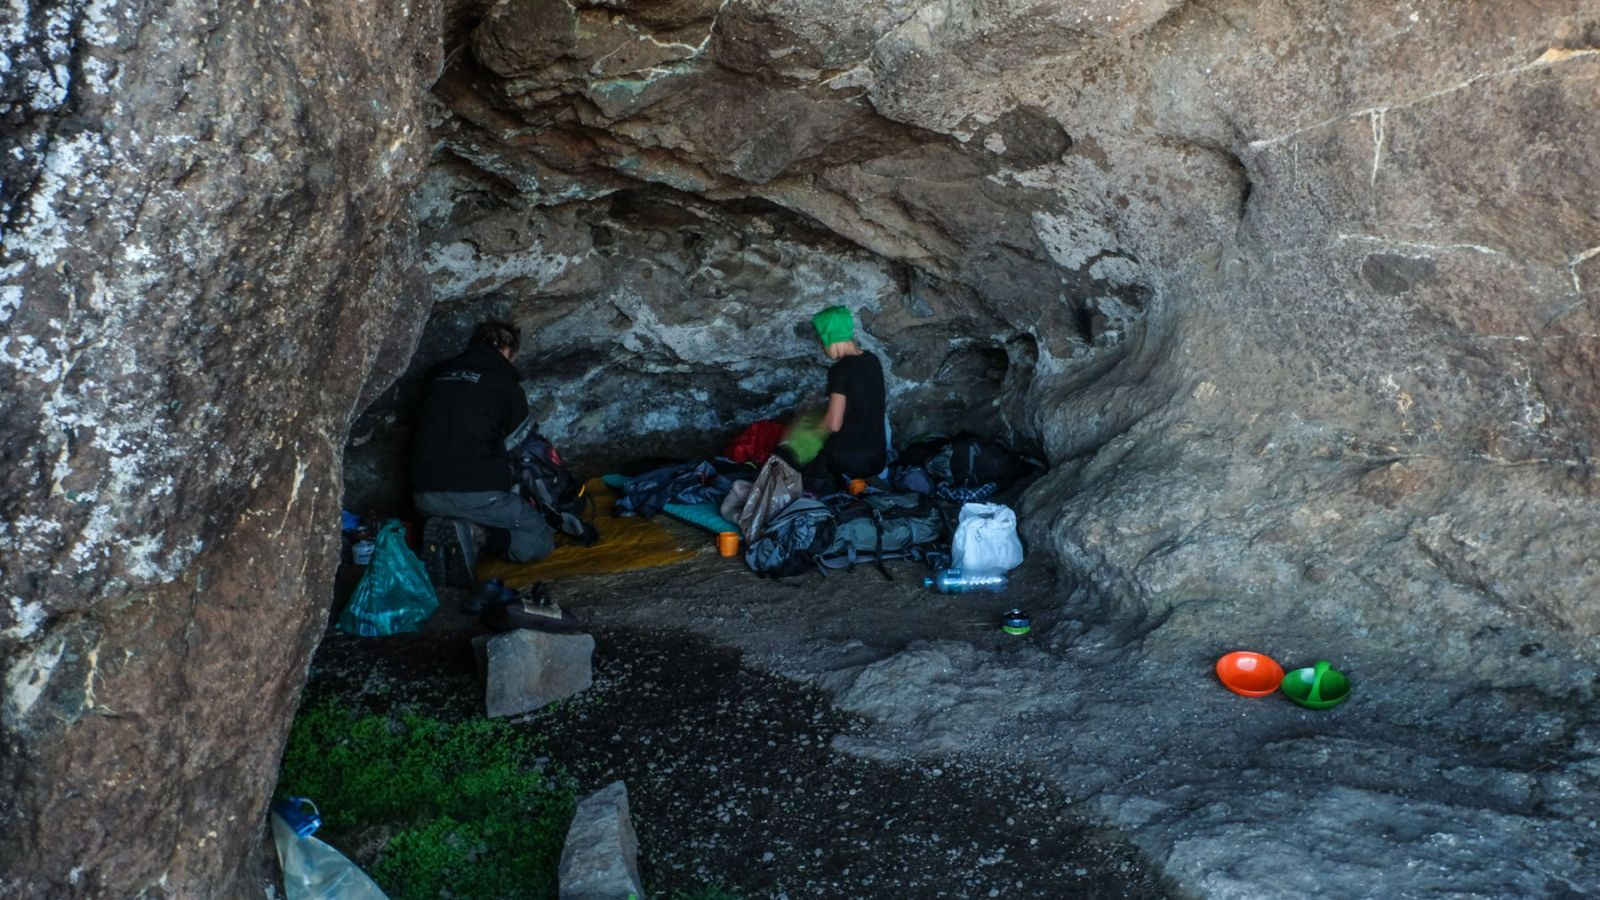 photo of a cave in the drakensberg mountains with a hiker and camping gear on the ground